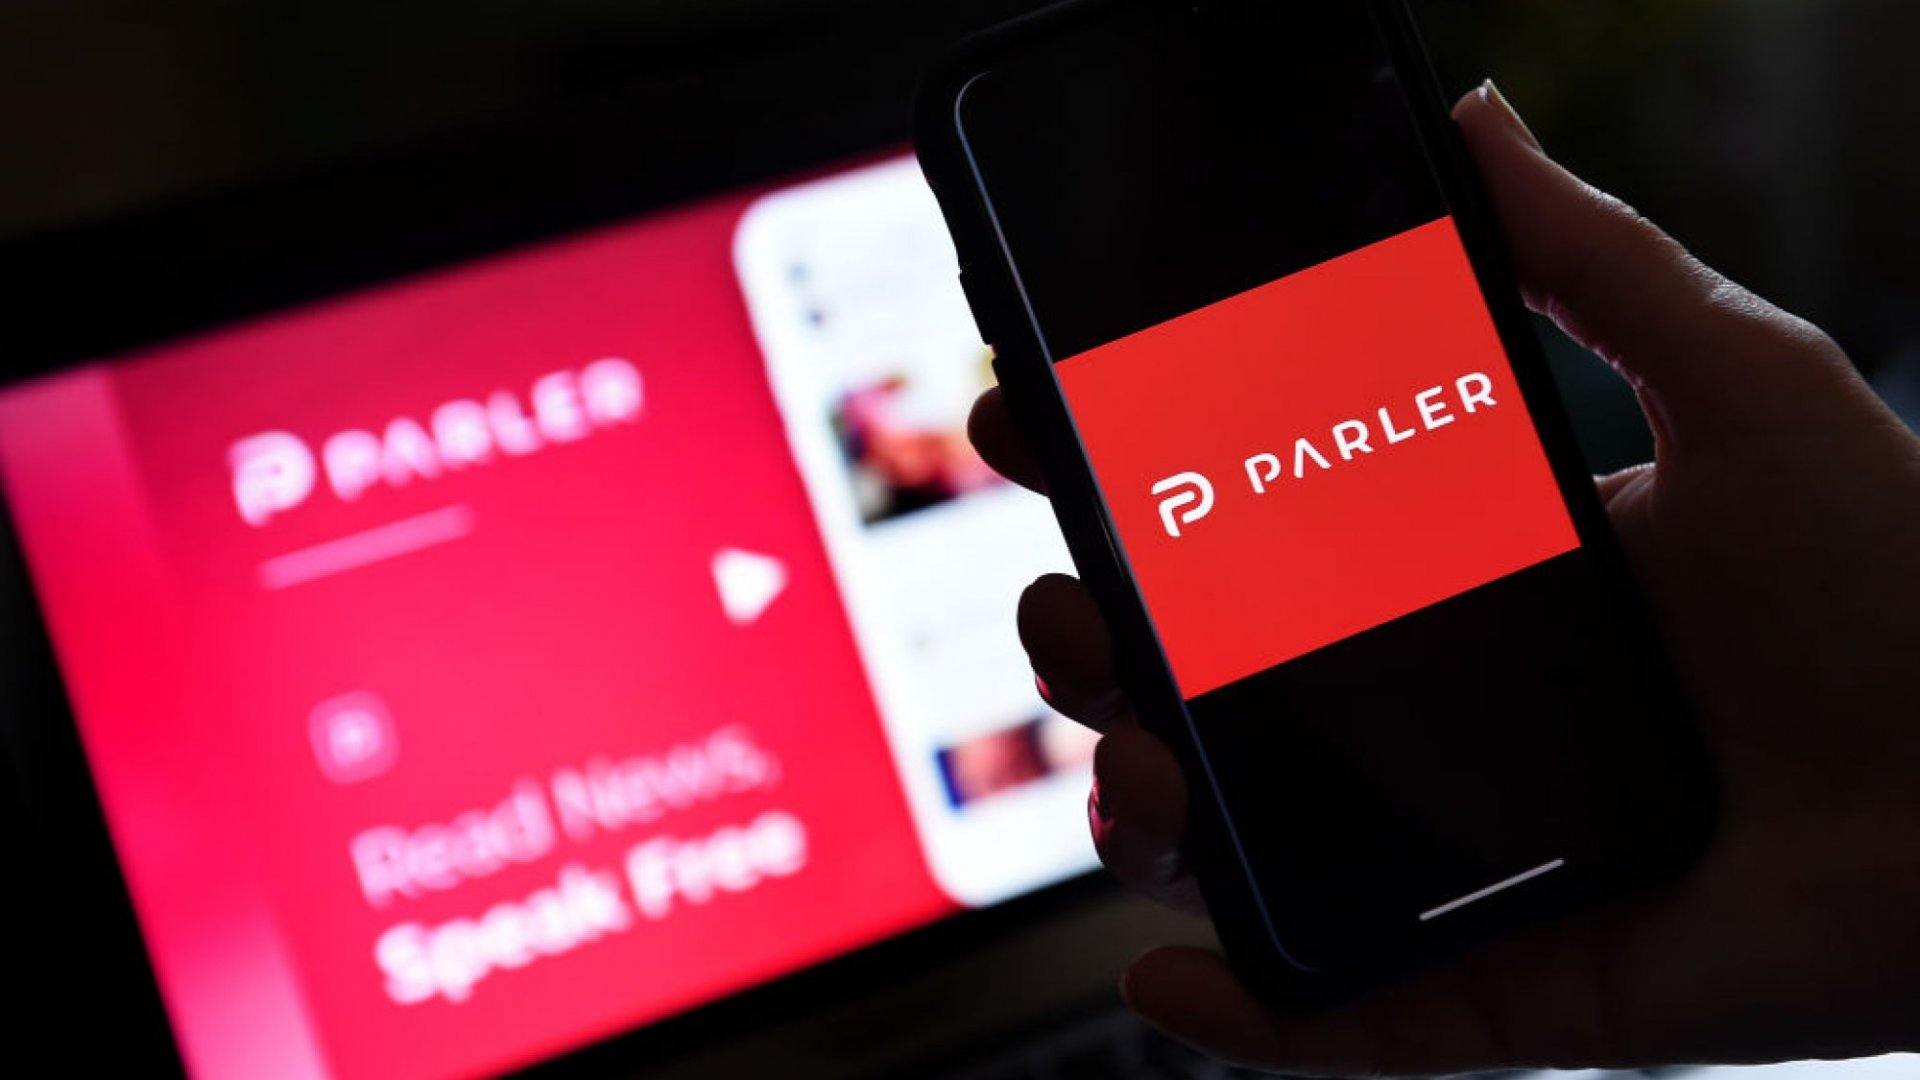 People Are Planning to Ditch Their iPhones Over Apple's Ban of Parler. That's a Terrible Idea